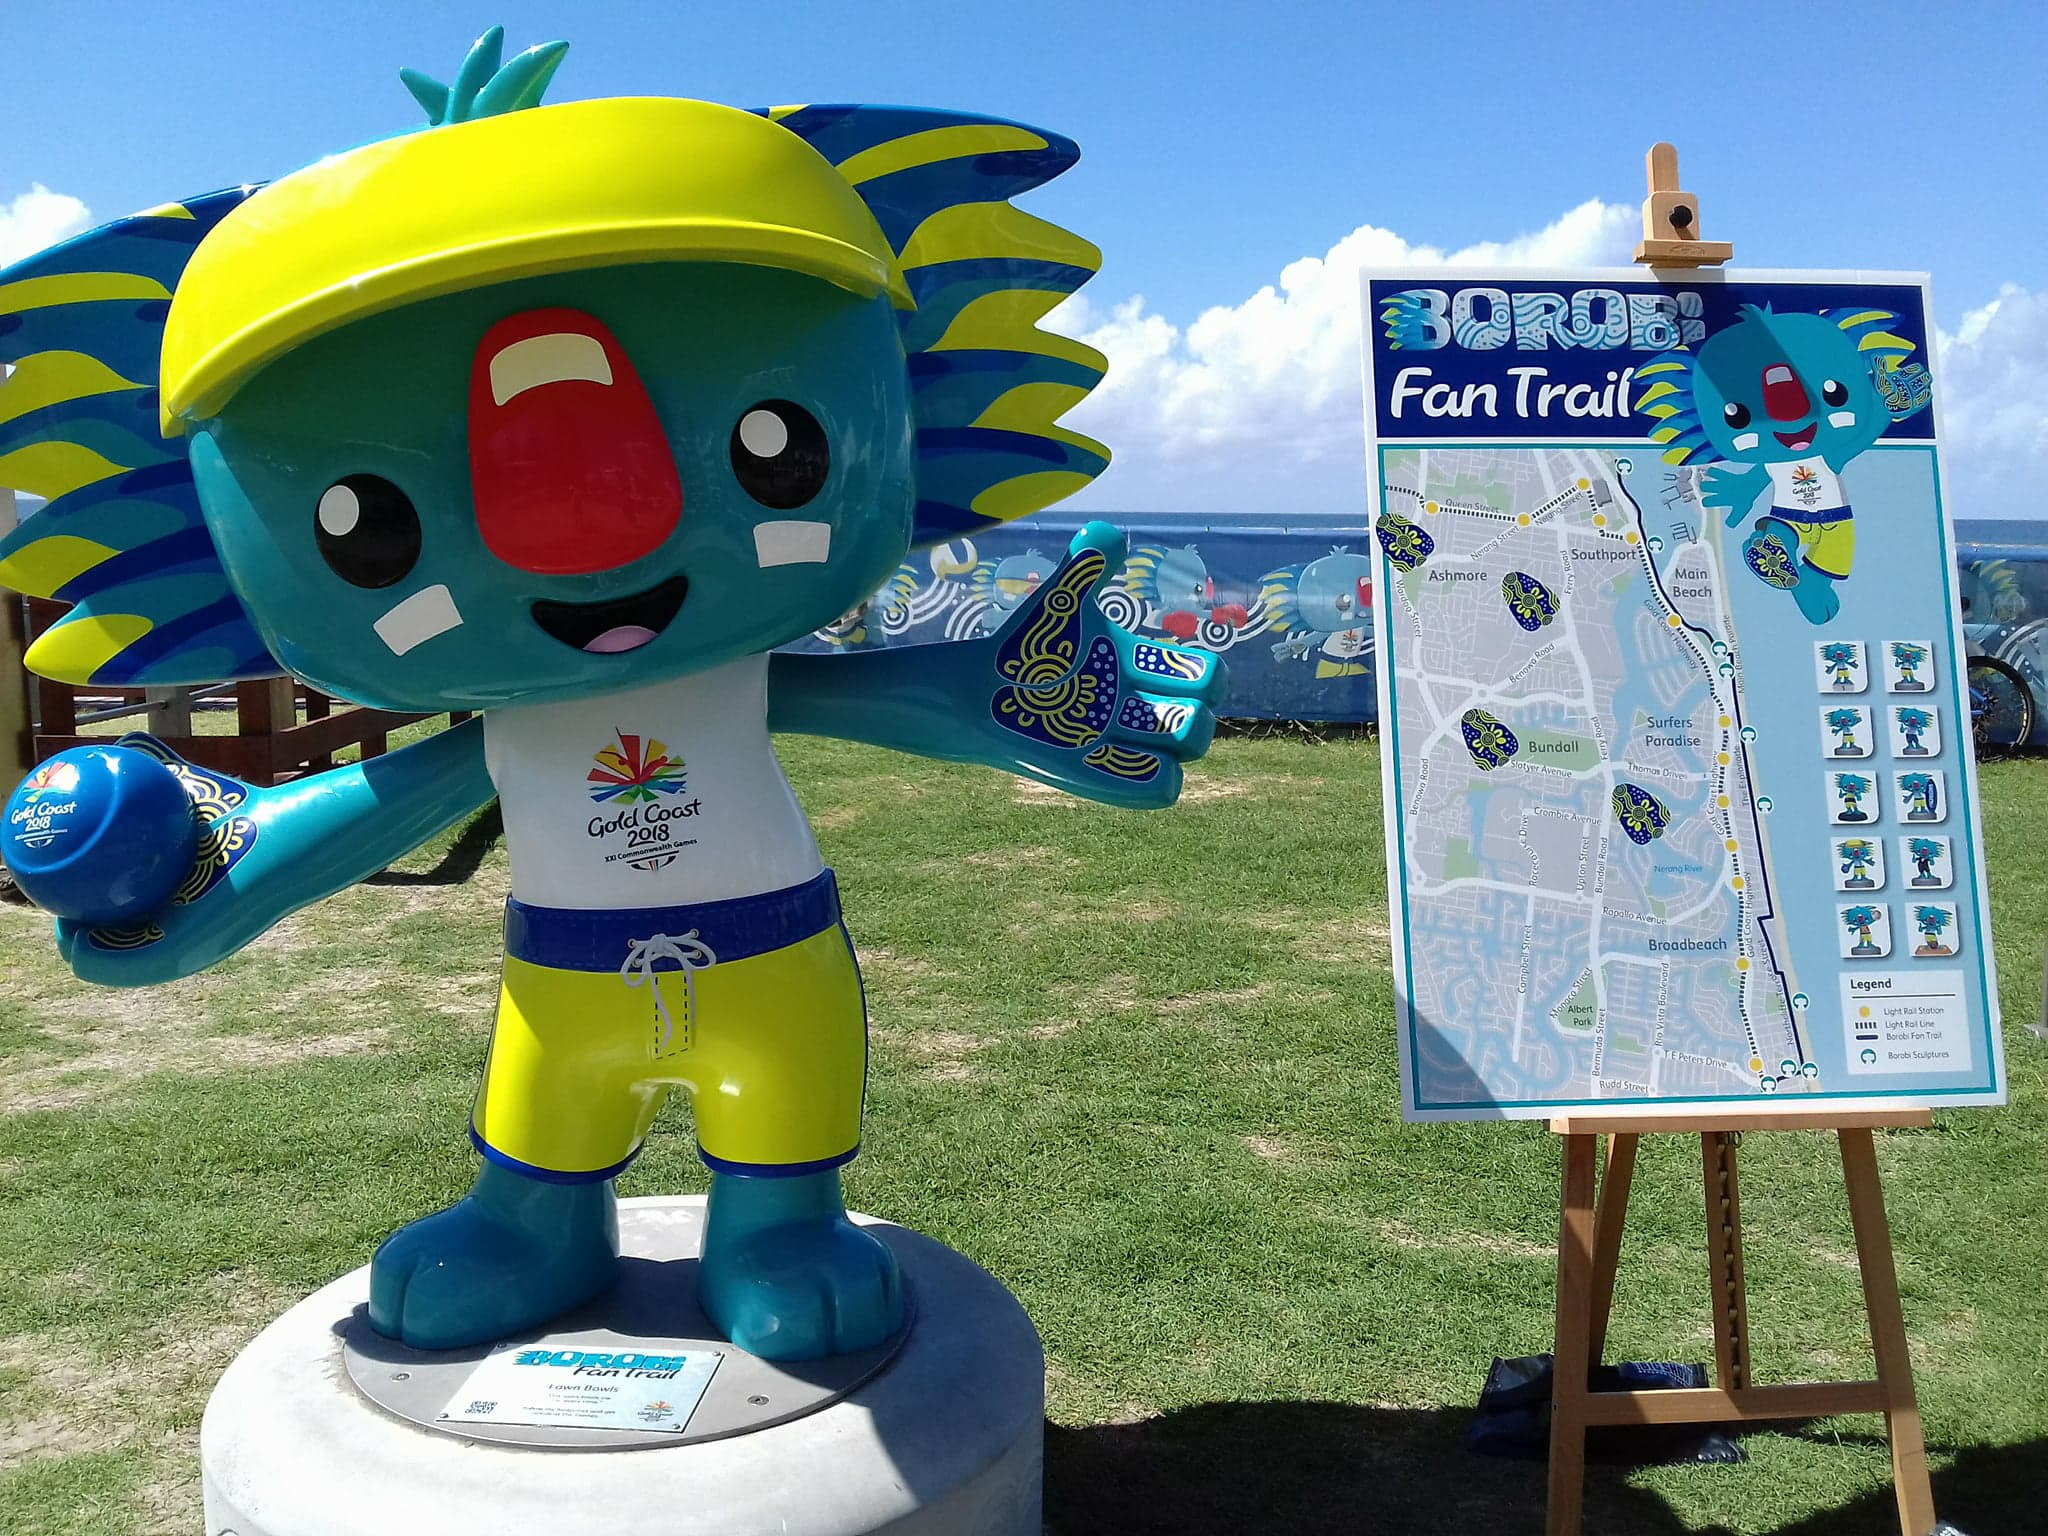 Gold Coast 2018 launch interactive mascot fan trail with prizes on offer